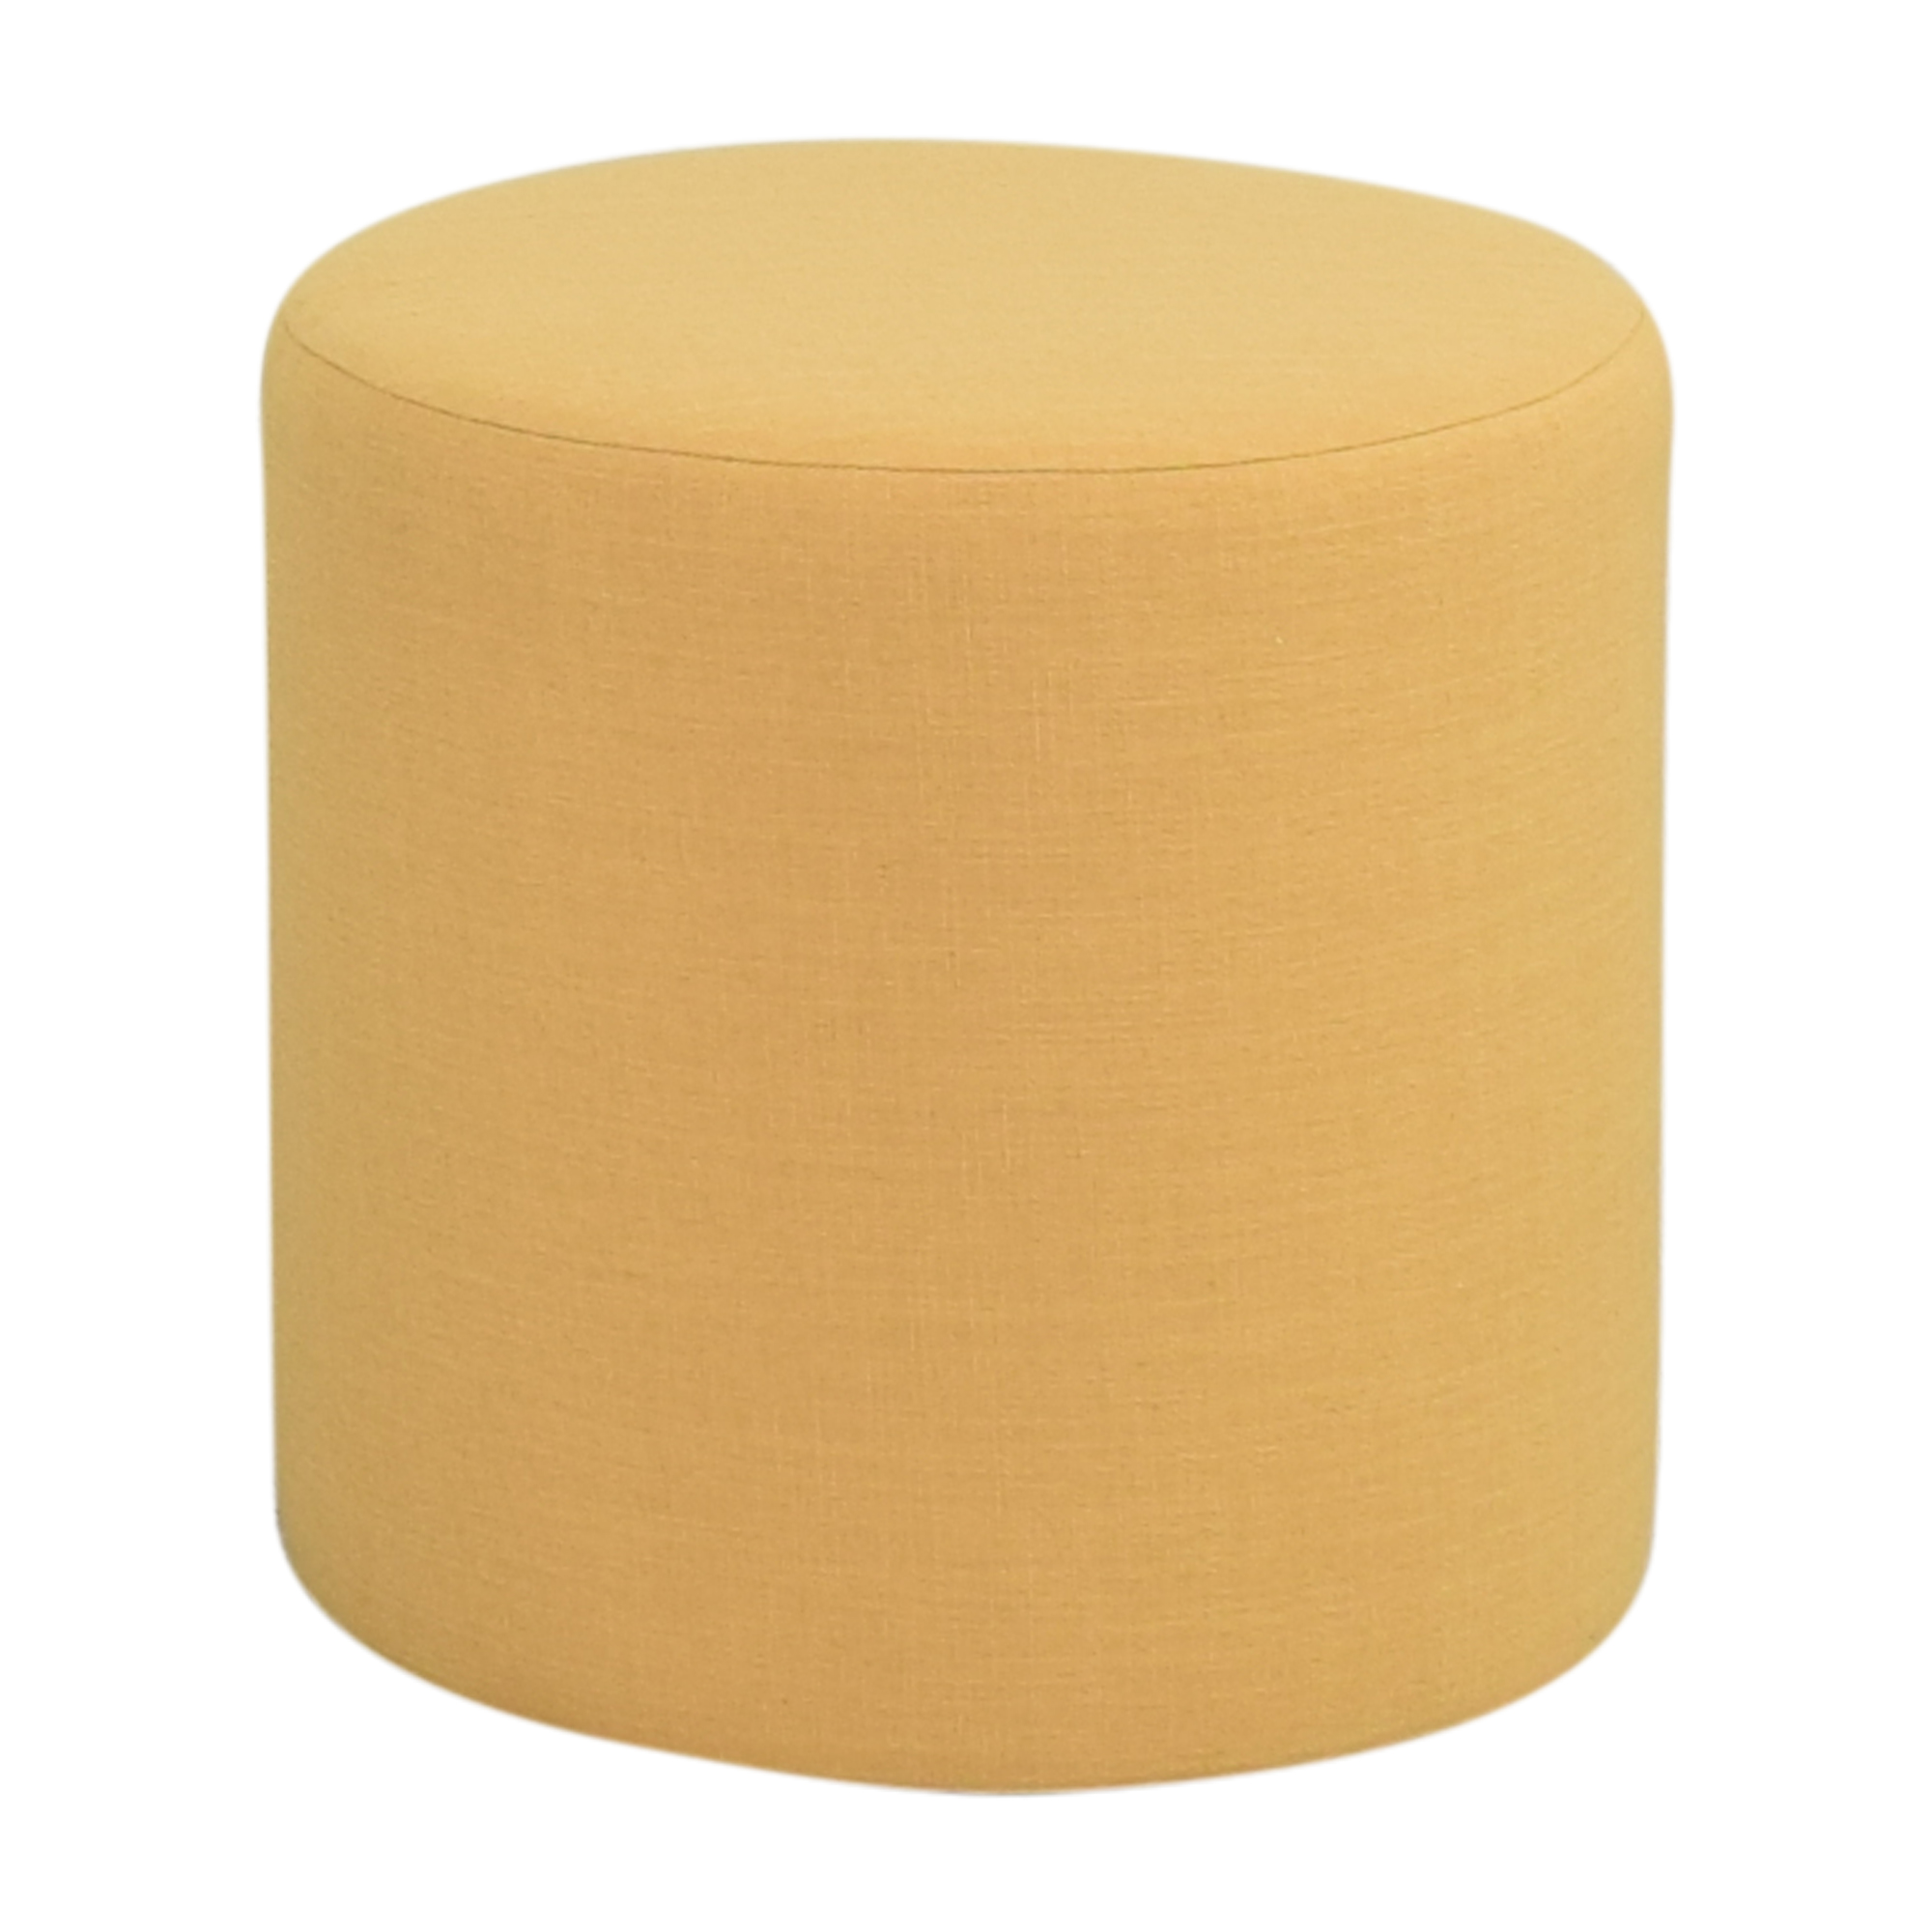 The Inside The Inside Drum Ottoman coupon